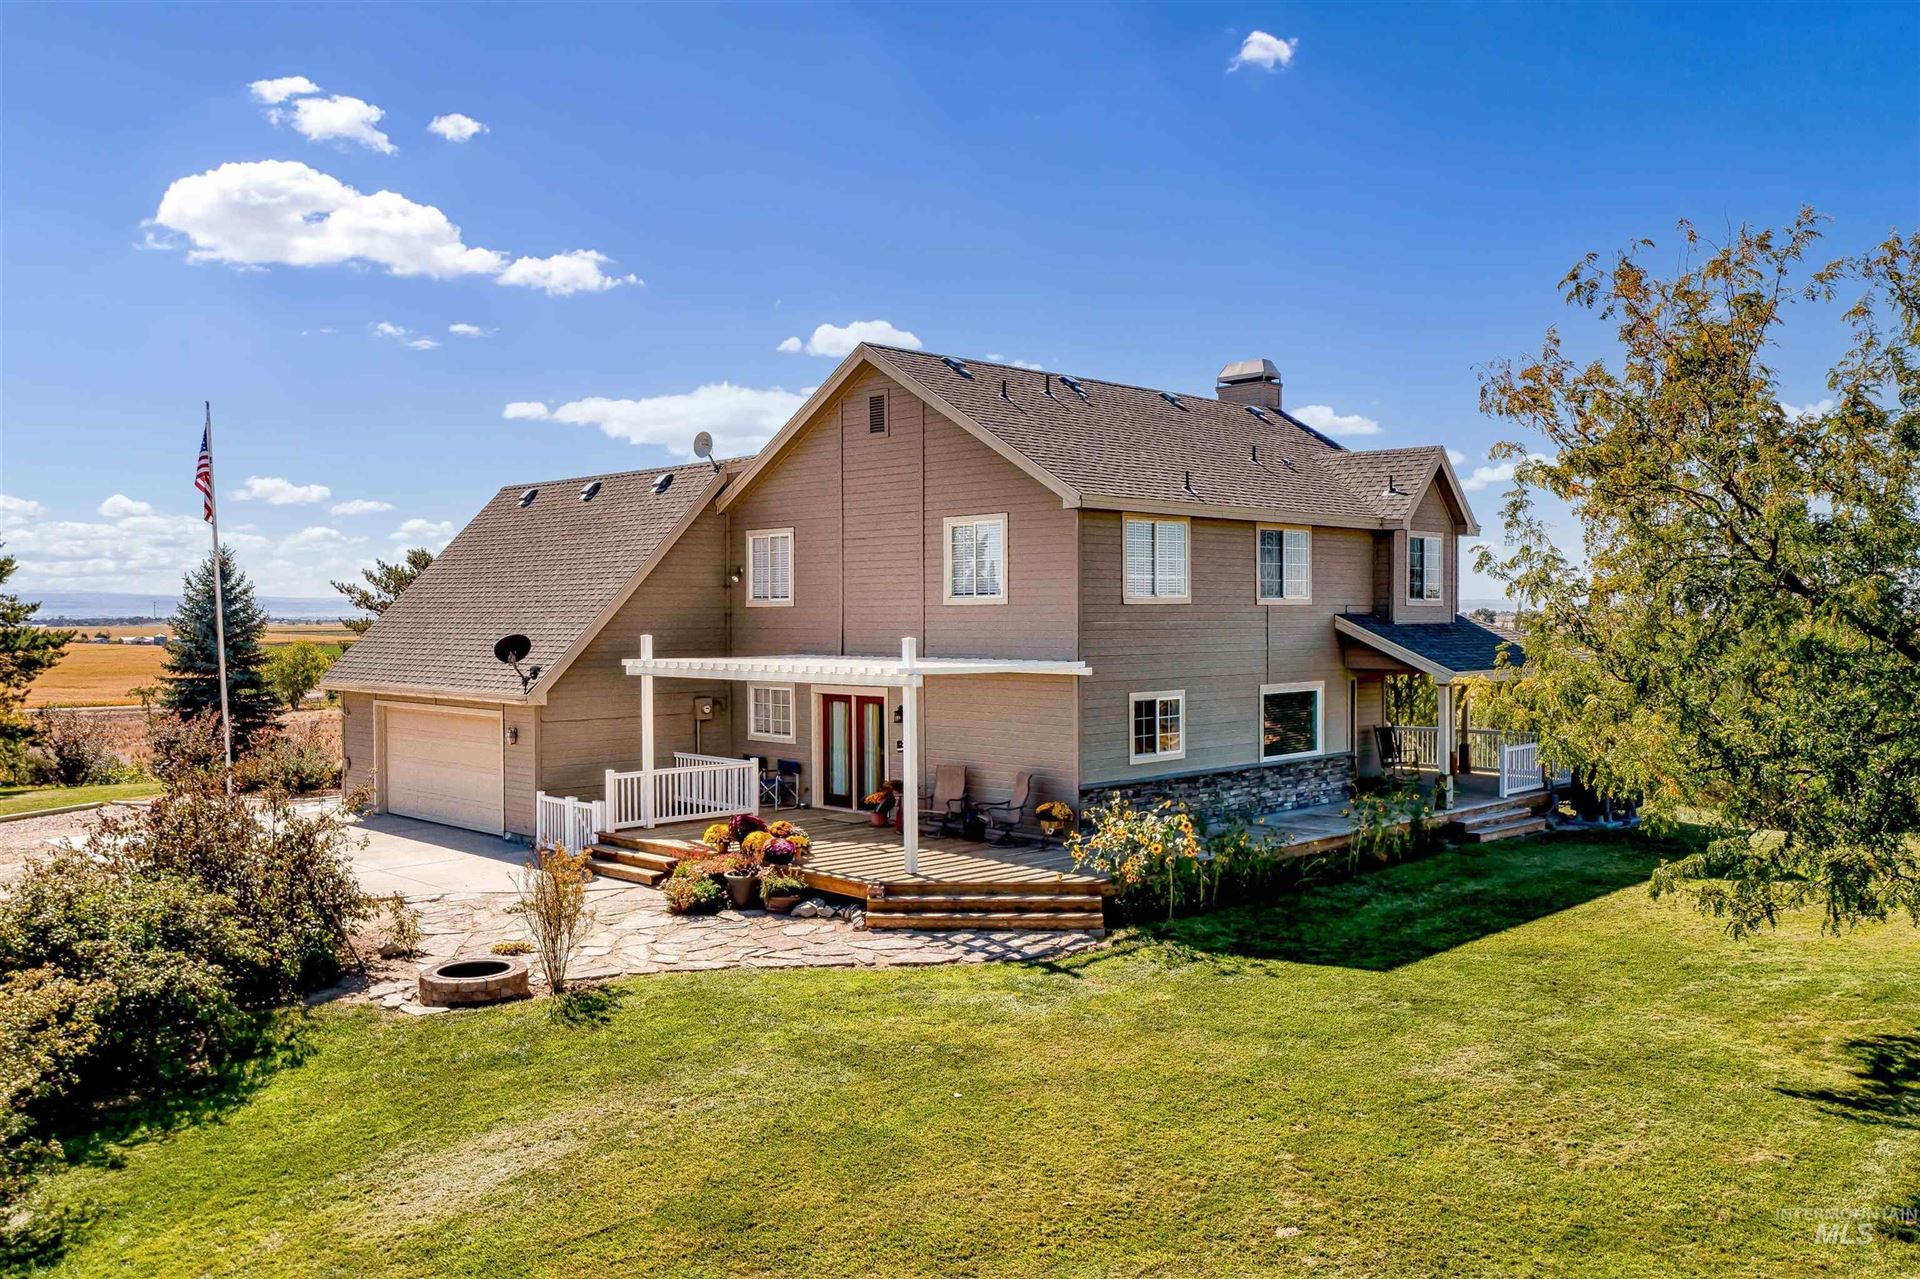 Photo of 14260 Sand Hollow Road, Caldwell, ID 83607-0000 (MLS # 98820138)